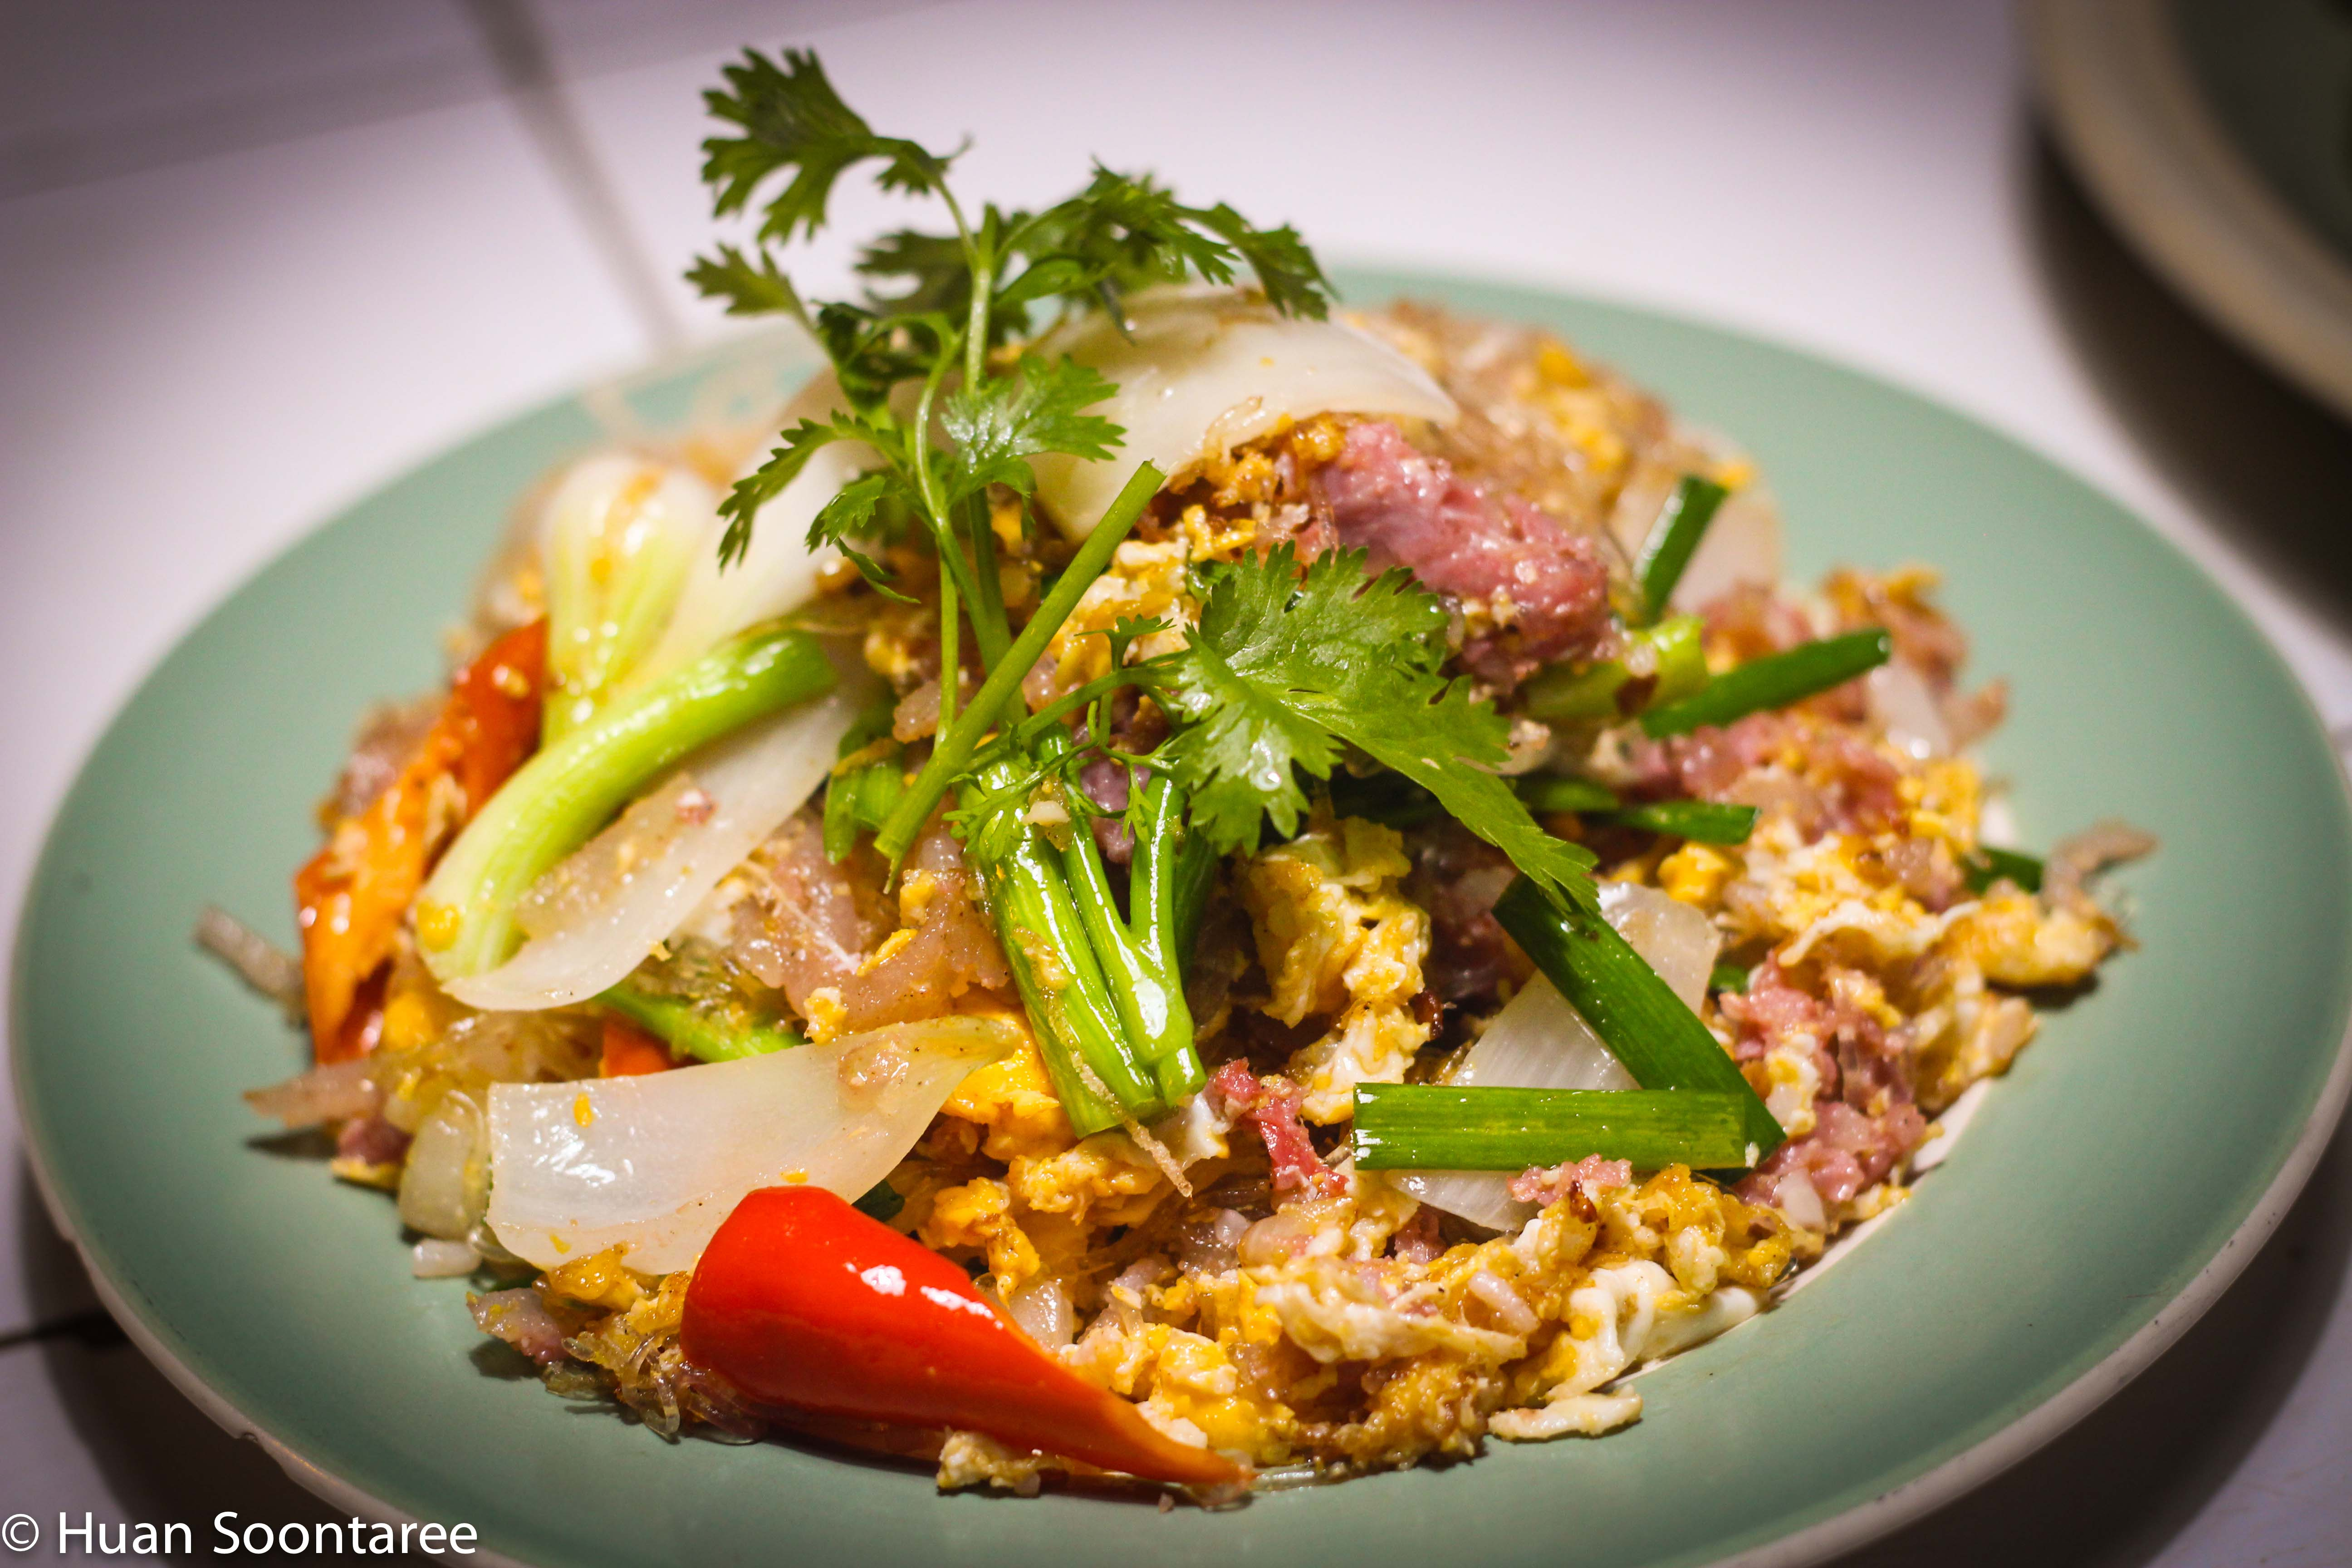 13 Sour pork fried with eggs and glass noodles